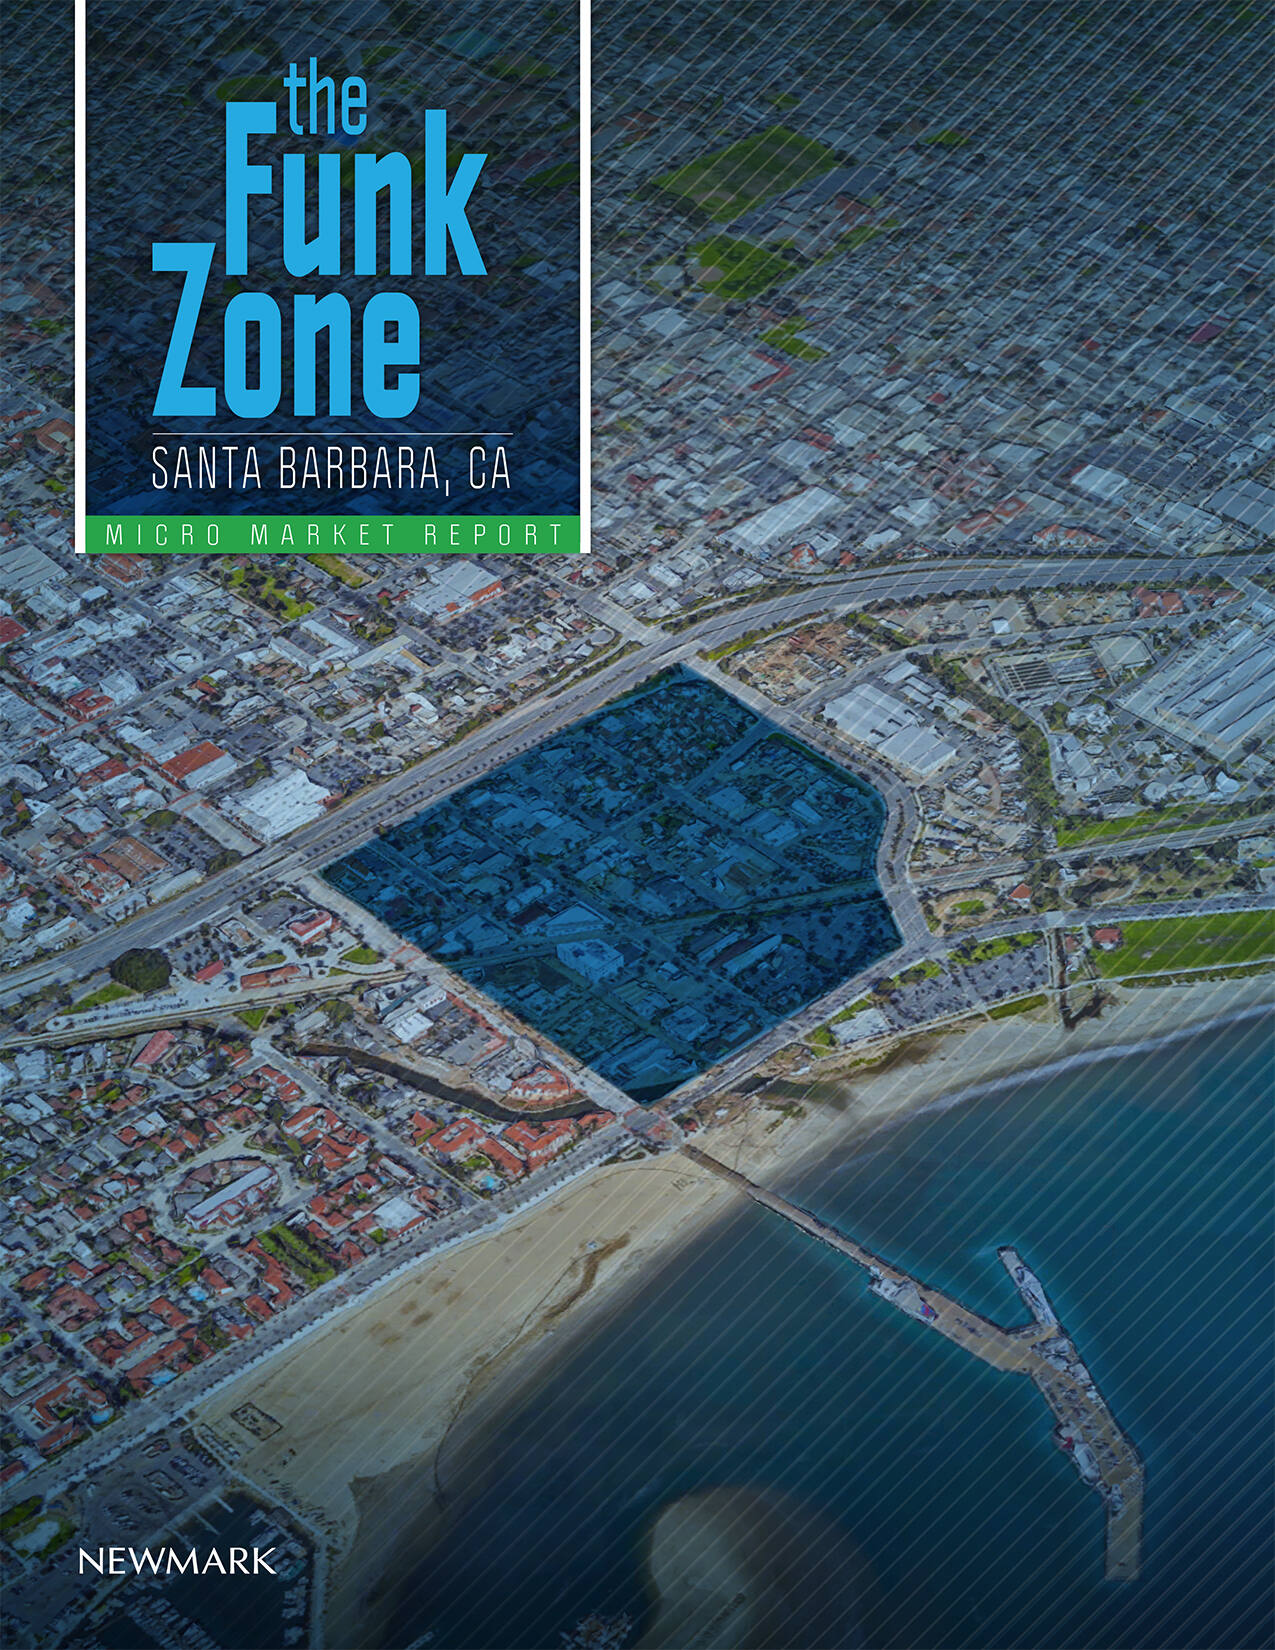 The Funk Zone - Santa Barbara, California Market Reports Report document image